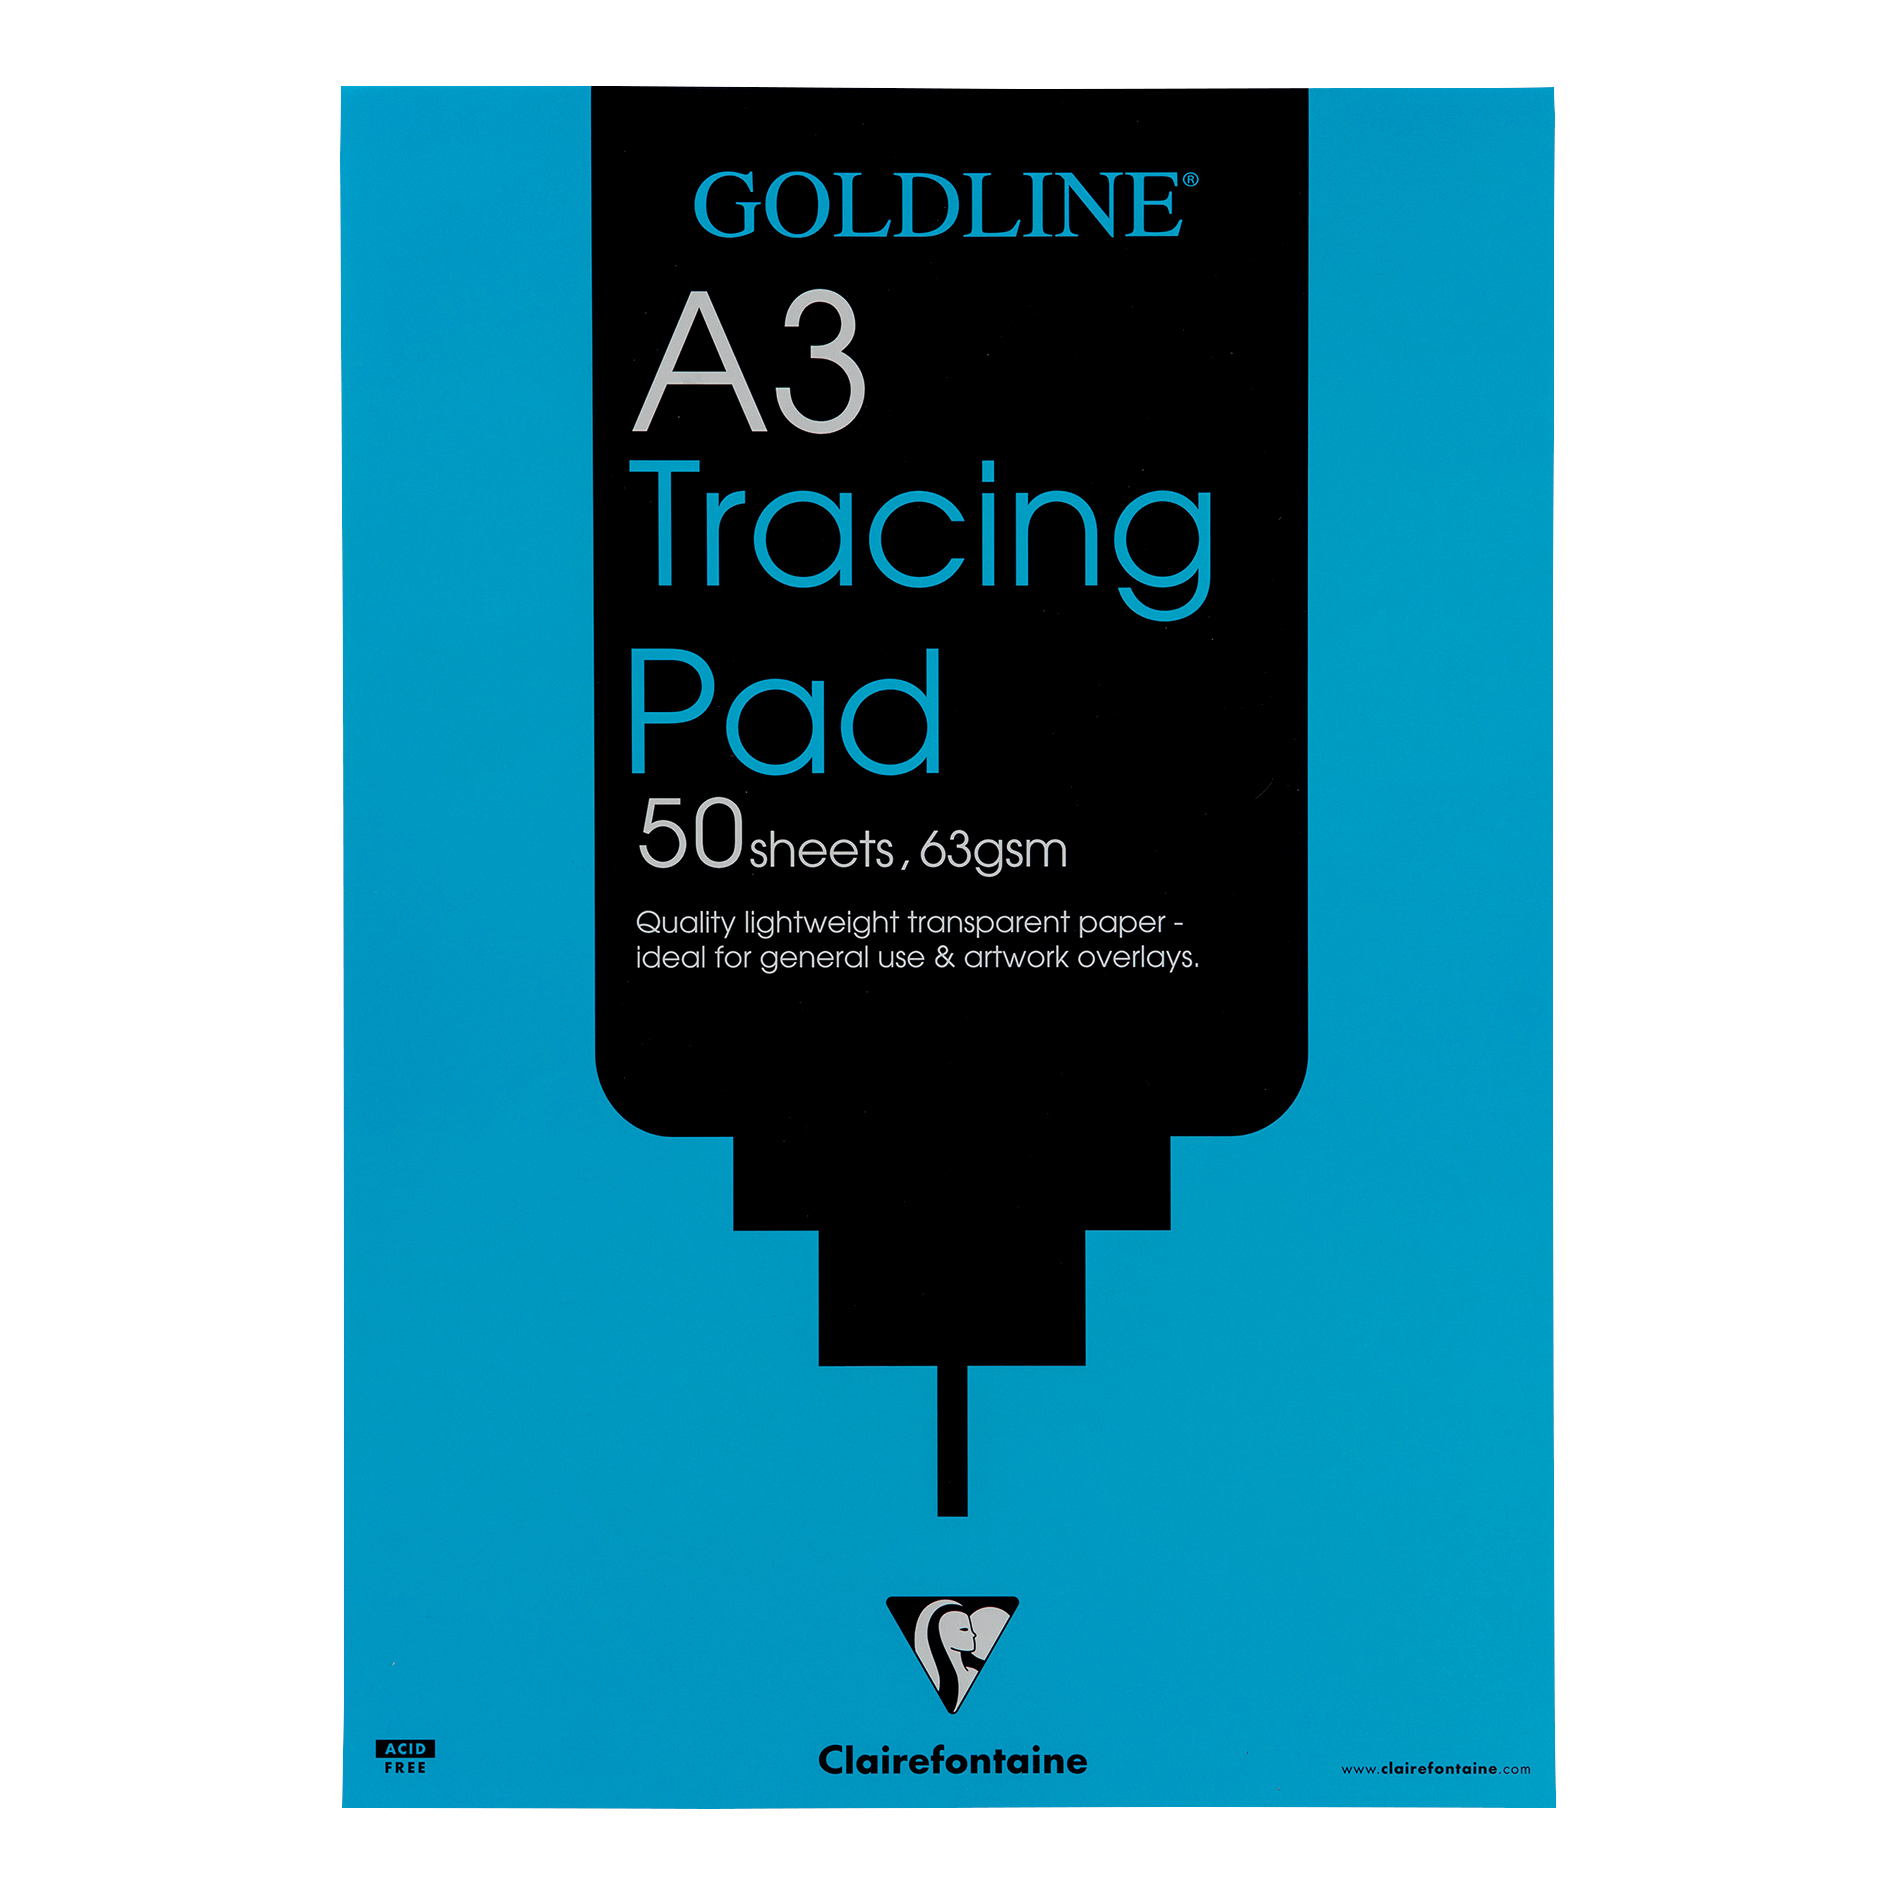 Tracing paper Goldline Popular Tracing Pad 63gsm Acid-free Paper 50 Sheets A3 Ref GPT2A3Z Pack 5